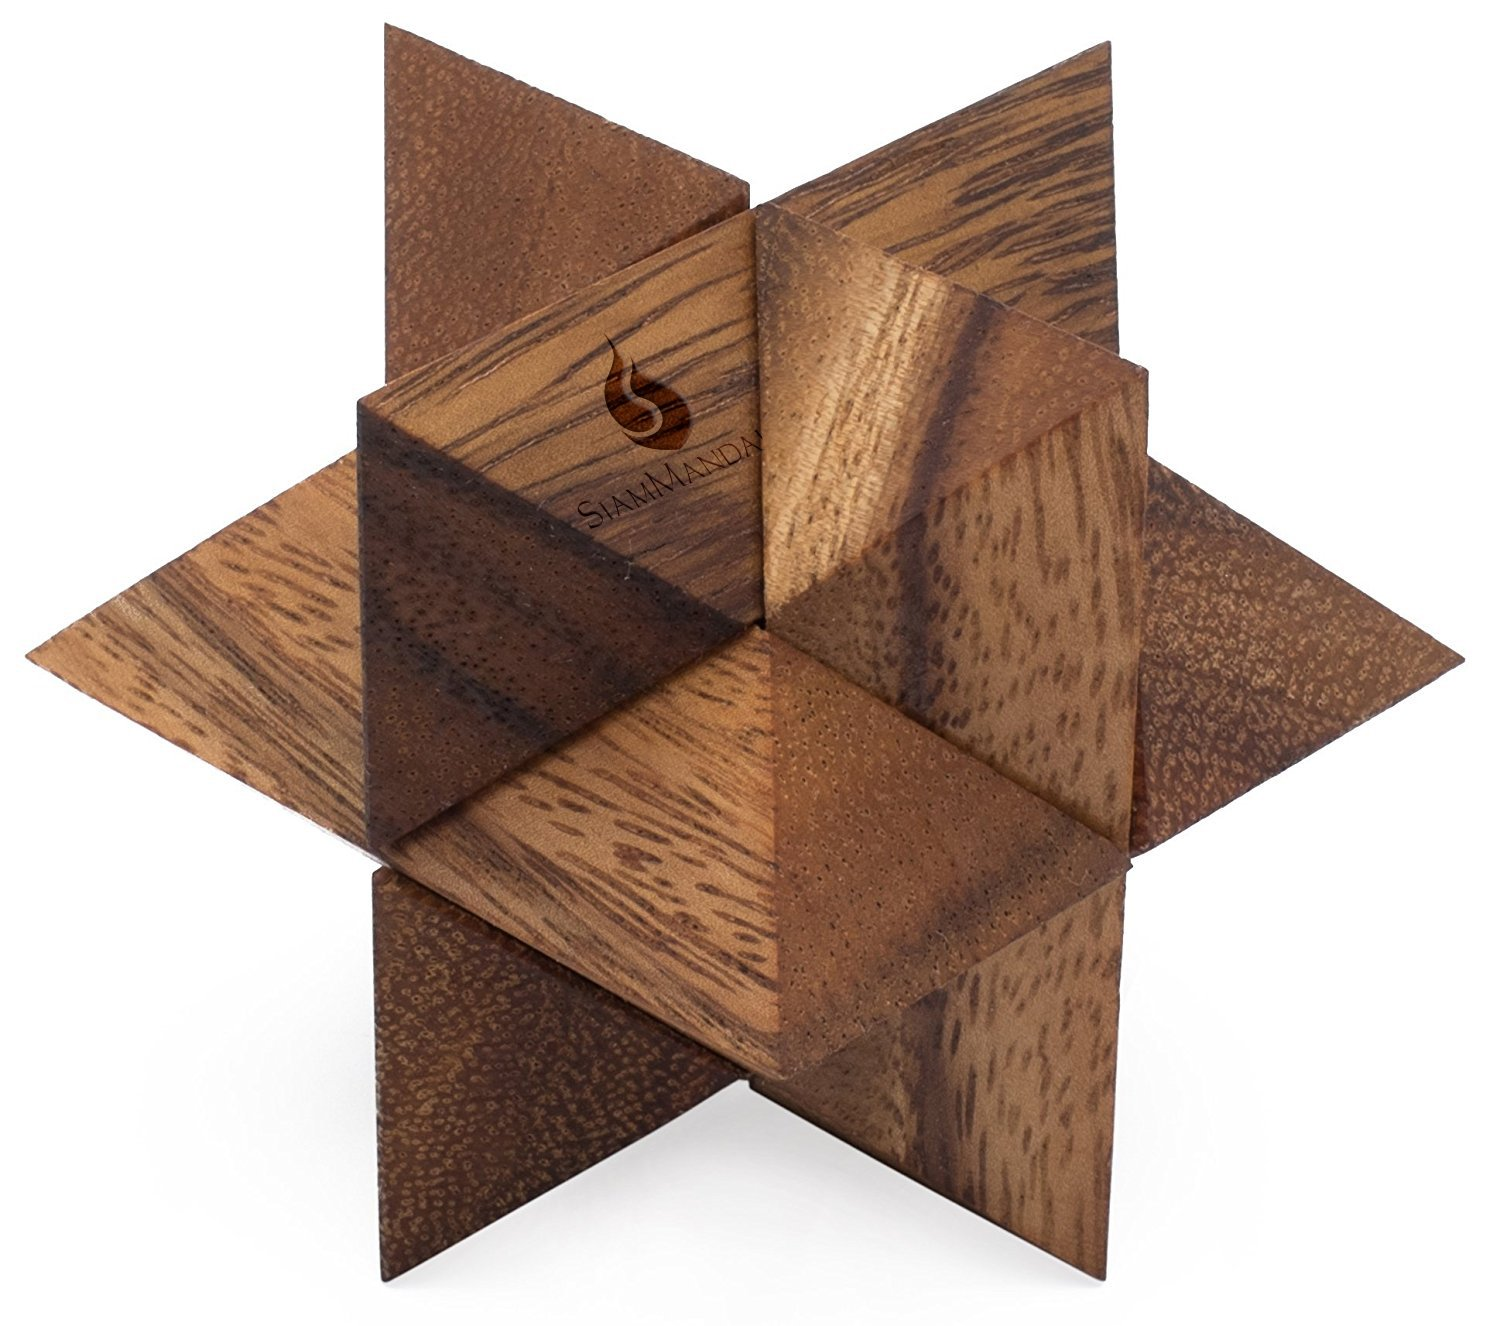 Shooting Star: Handmade & Organic 3D Brain Teaser Wooden Puzzle for Adults from SiamMandalay with SM Gift Box(Pictured)